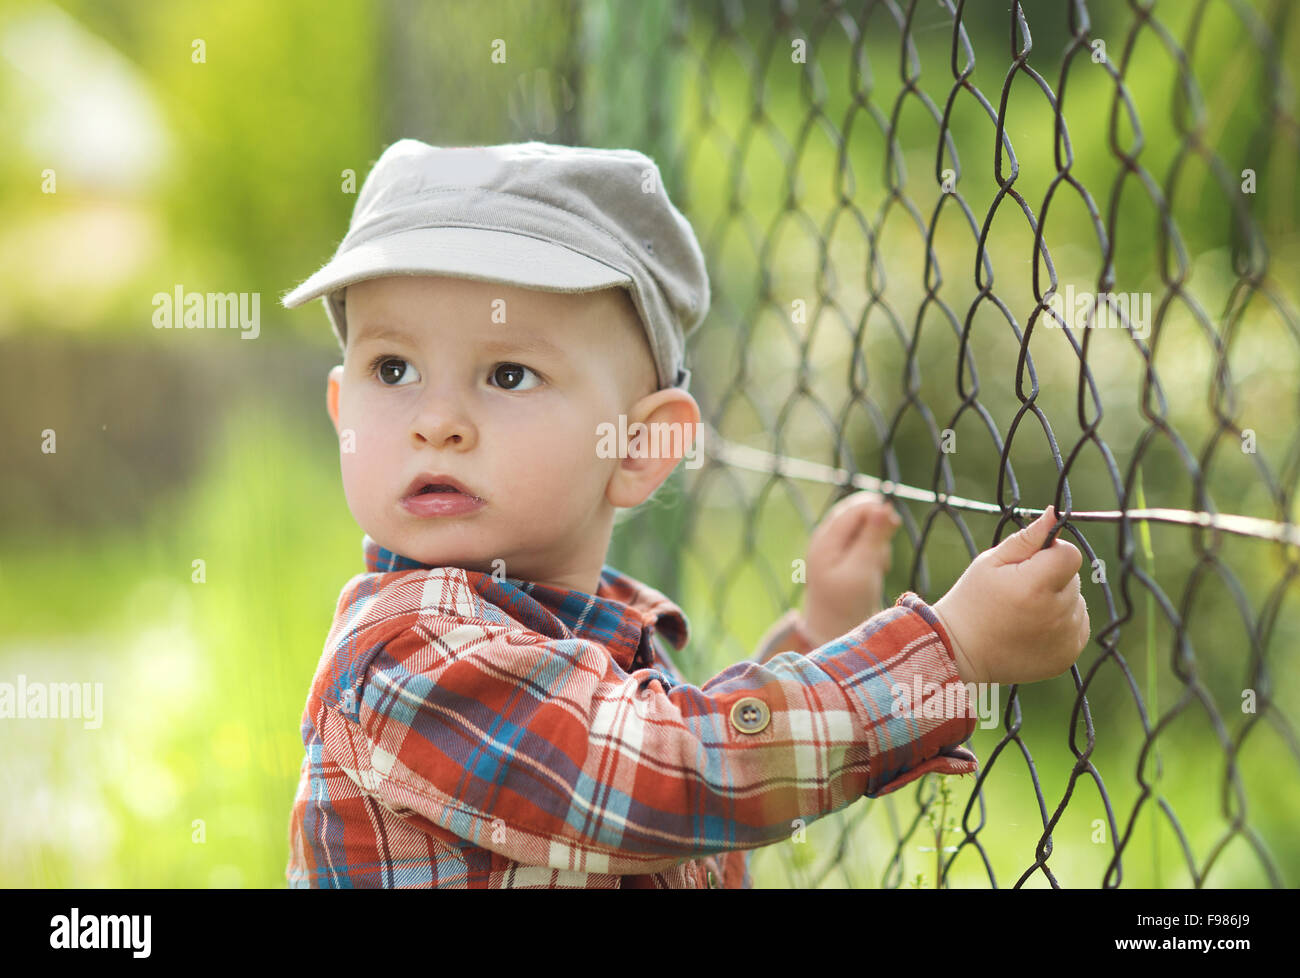 Cute Little Baby Boy Looking Through Fence Stock Photo 91764577 Alamy